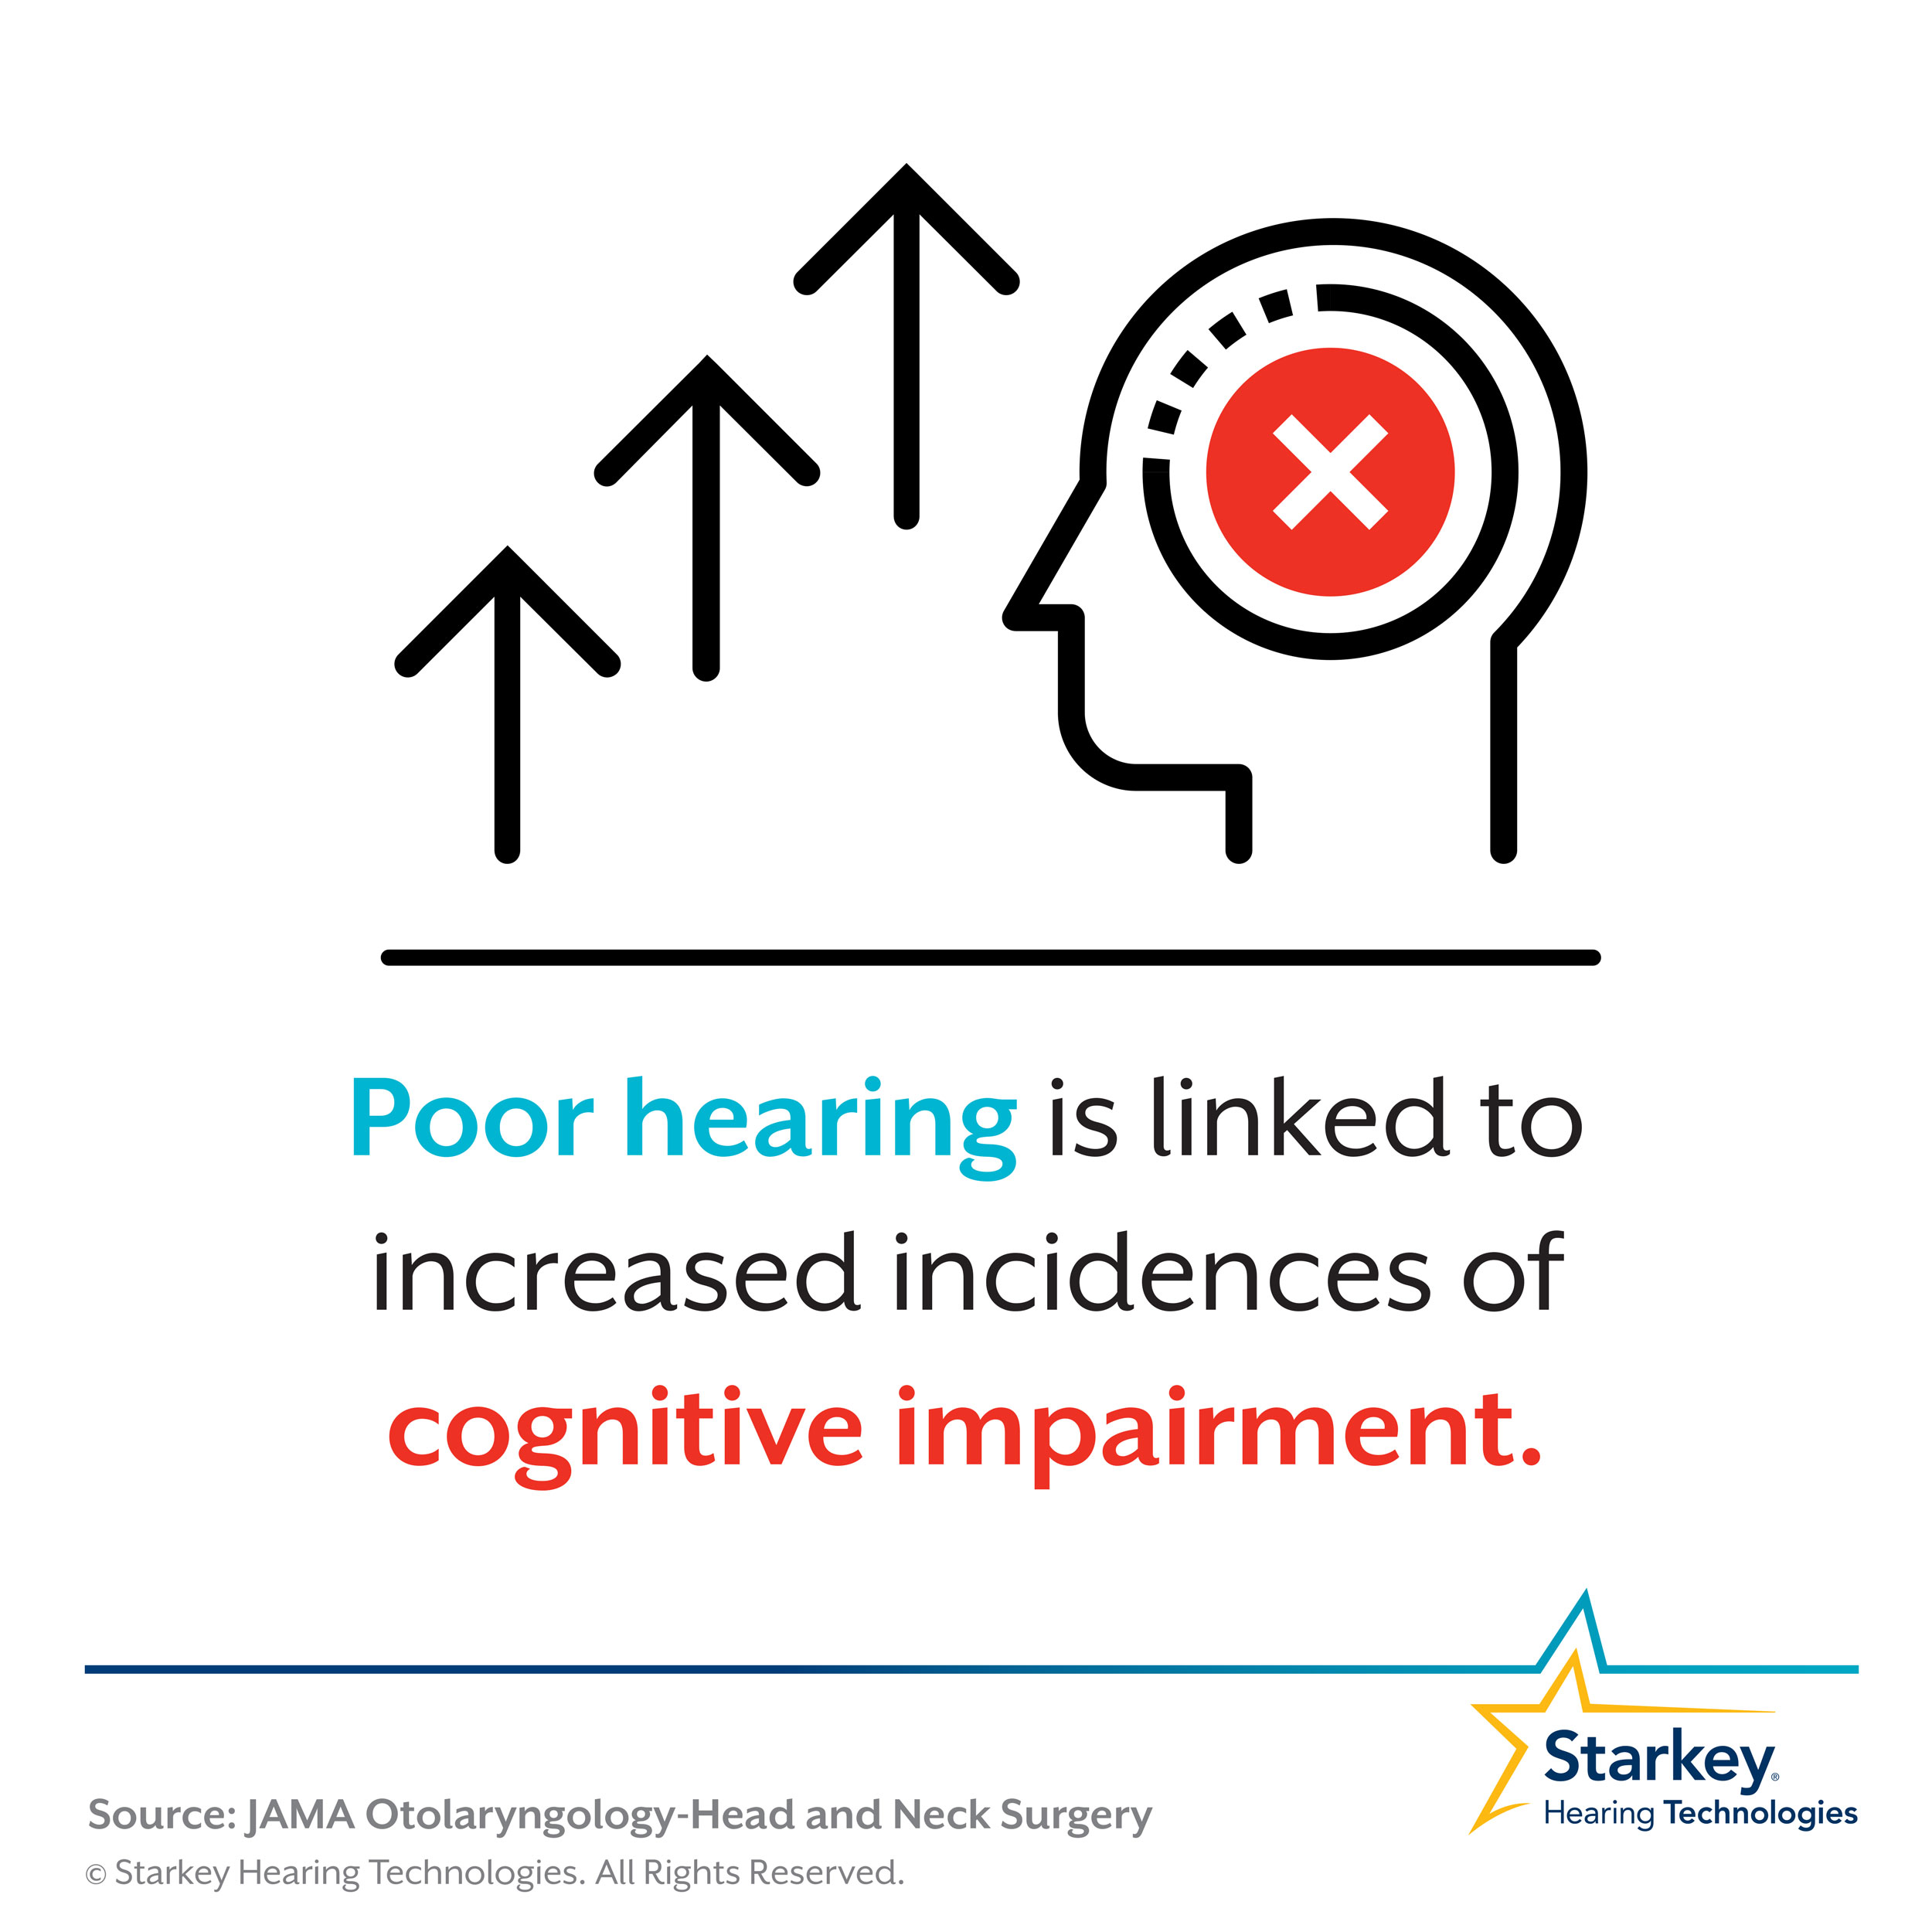 e4ae3f6a1eb #HearingFactFriday: There's now a hearing aid that can help track your  brain health